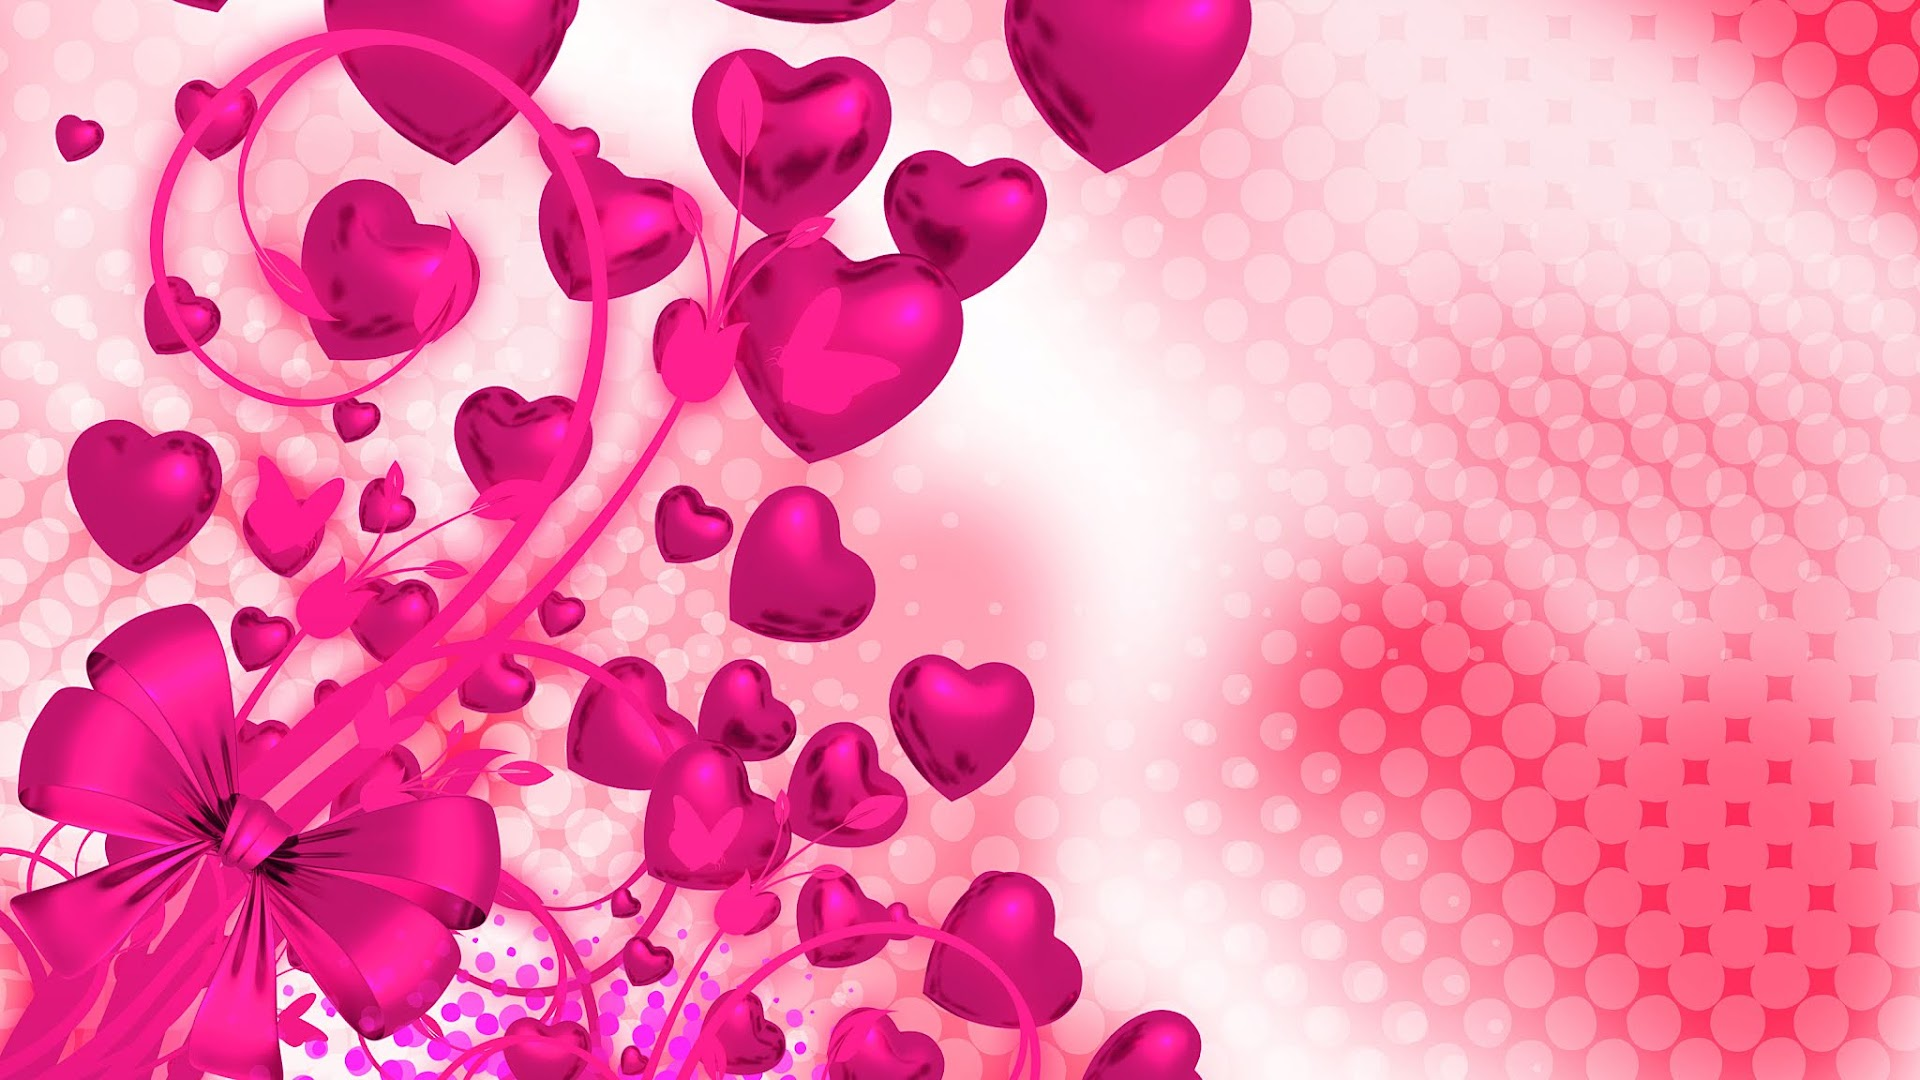 Magenta Themed Background with hearts and floral tied in a bow